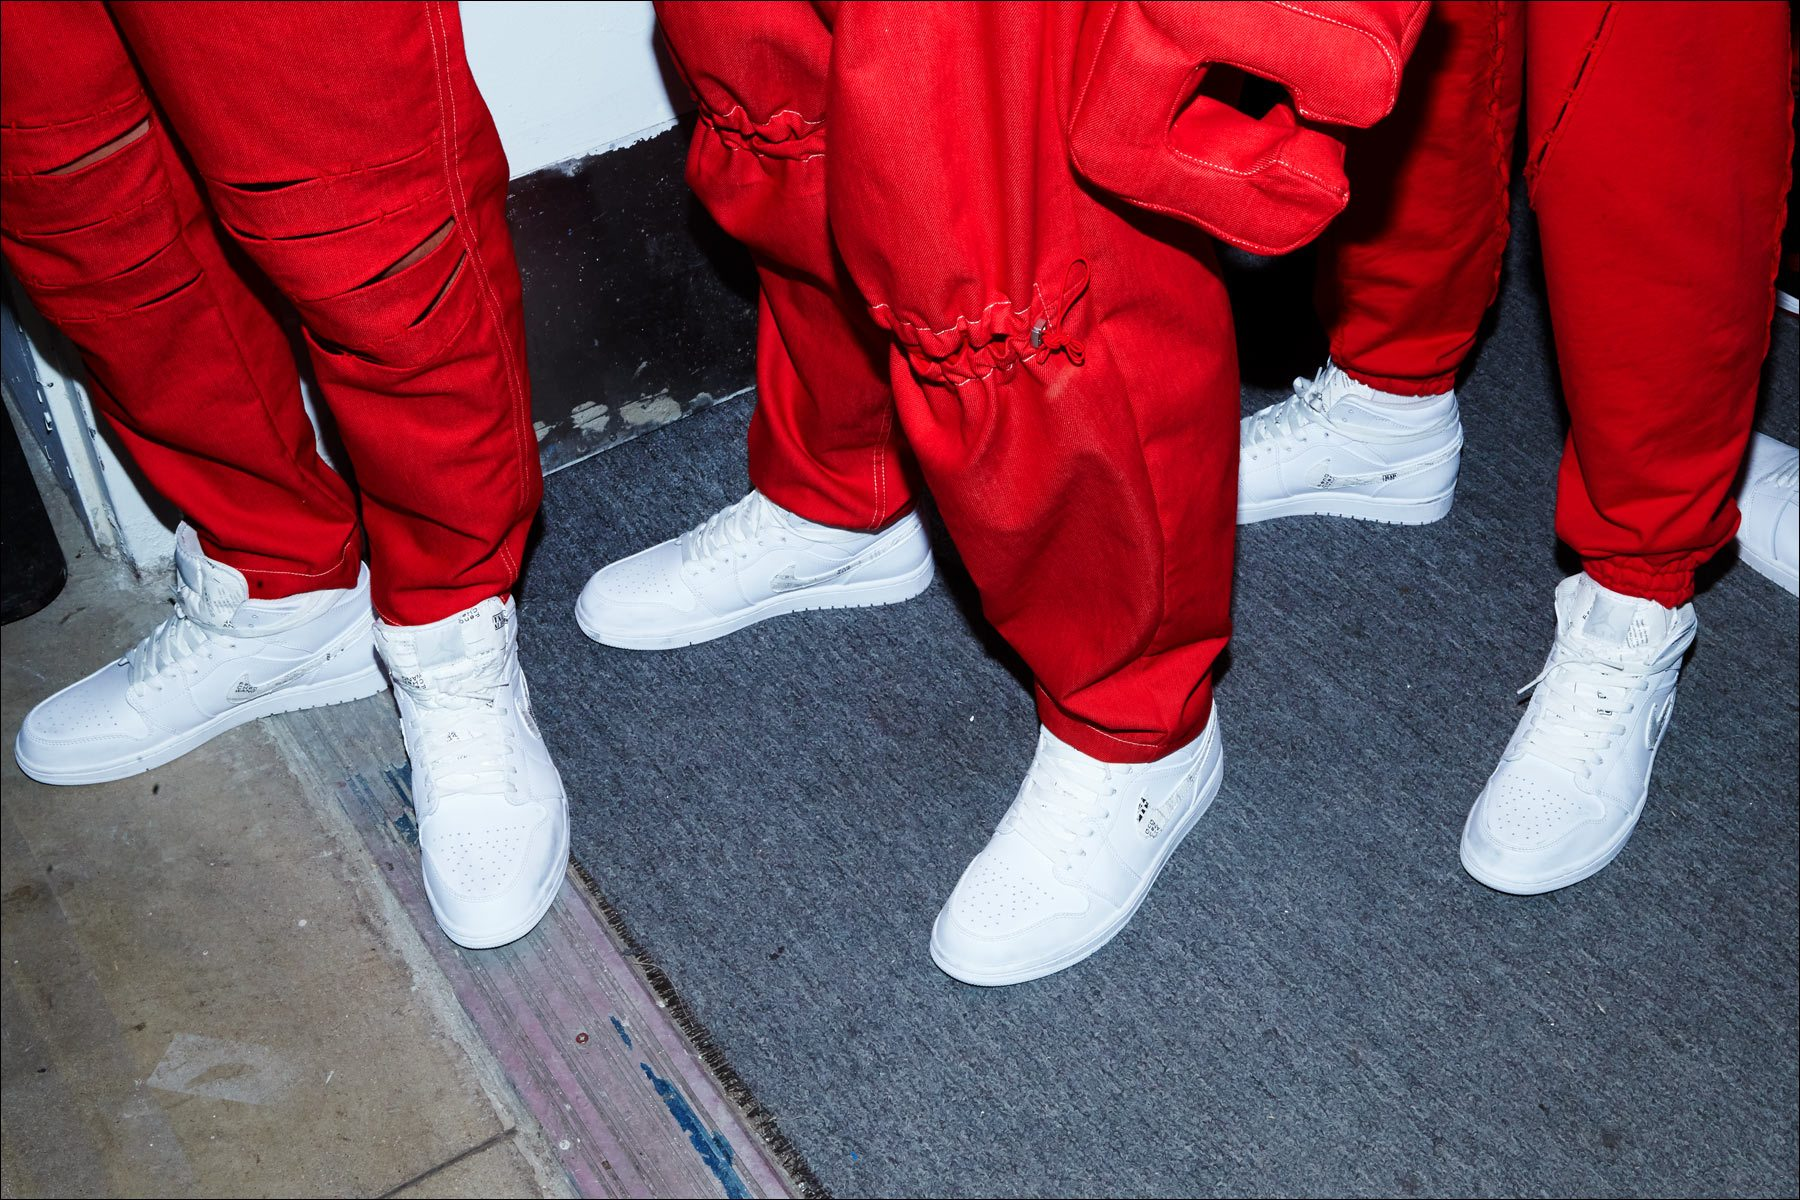 Detail shot of trousers and sneakers, backstage at Feng Chen Wang menswear. S/S18. Photography by Alexander Thompson for Ponyboy magazine NY.